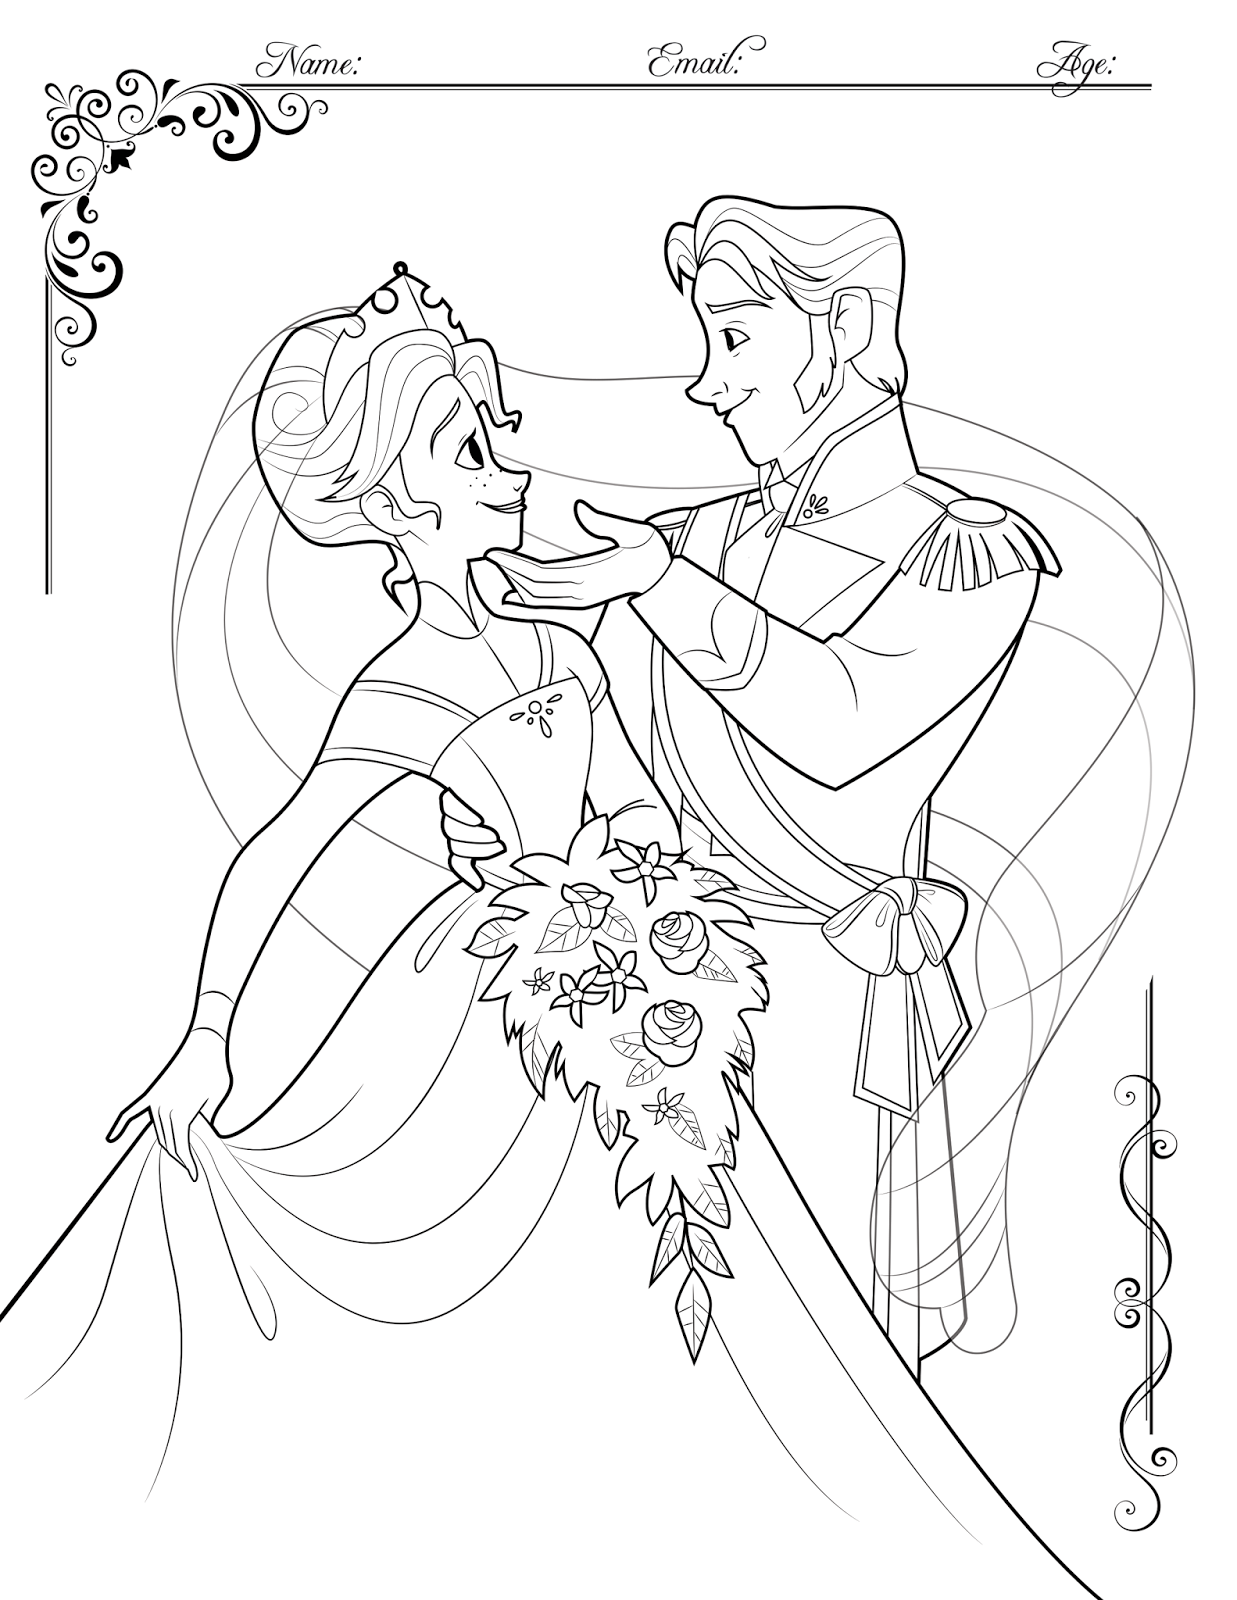 StoryMonster: FROZEN Coloring Contest!